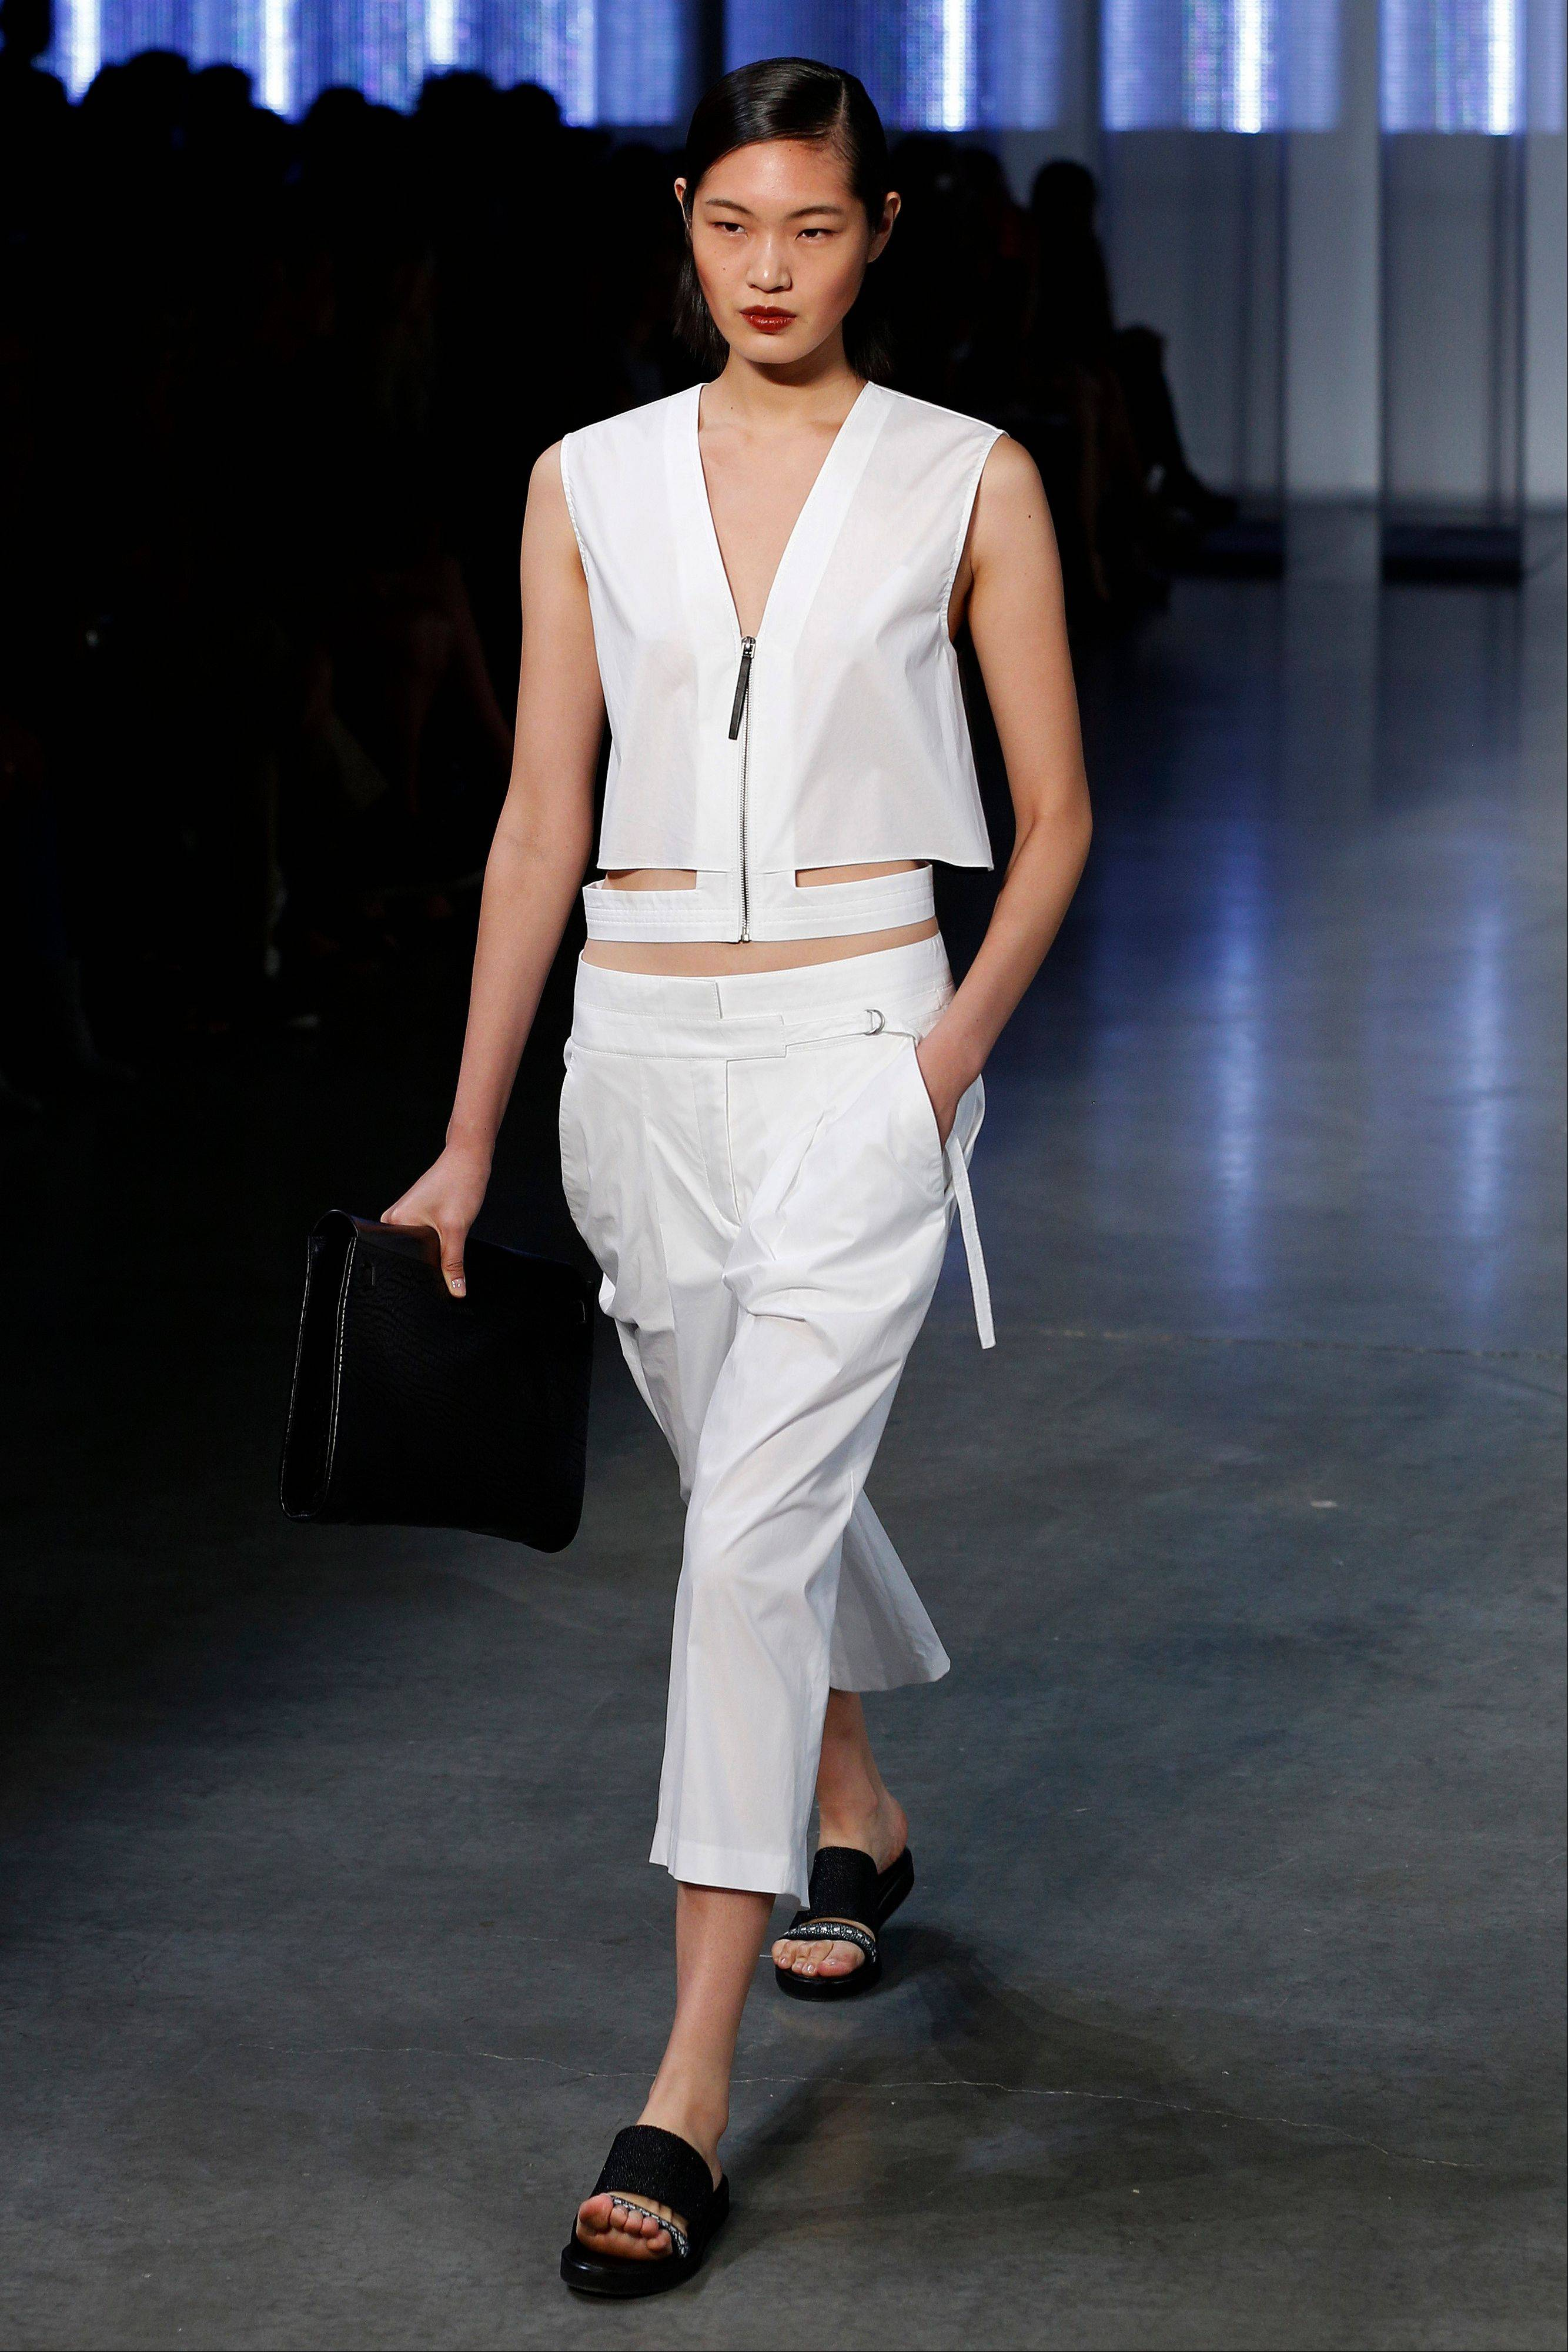 This Sept. 6, 2013 file photo shows a model wearing sandals as she models the Helmut Lang Spring 2014 collection during Fashion Week in New York. In shoe stores this year, you could see a trend toward flats, including a notable reinterpretation of those chunky Birkenstocks.